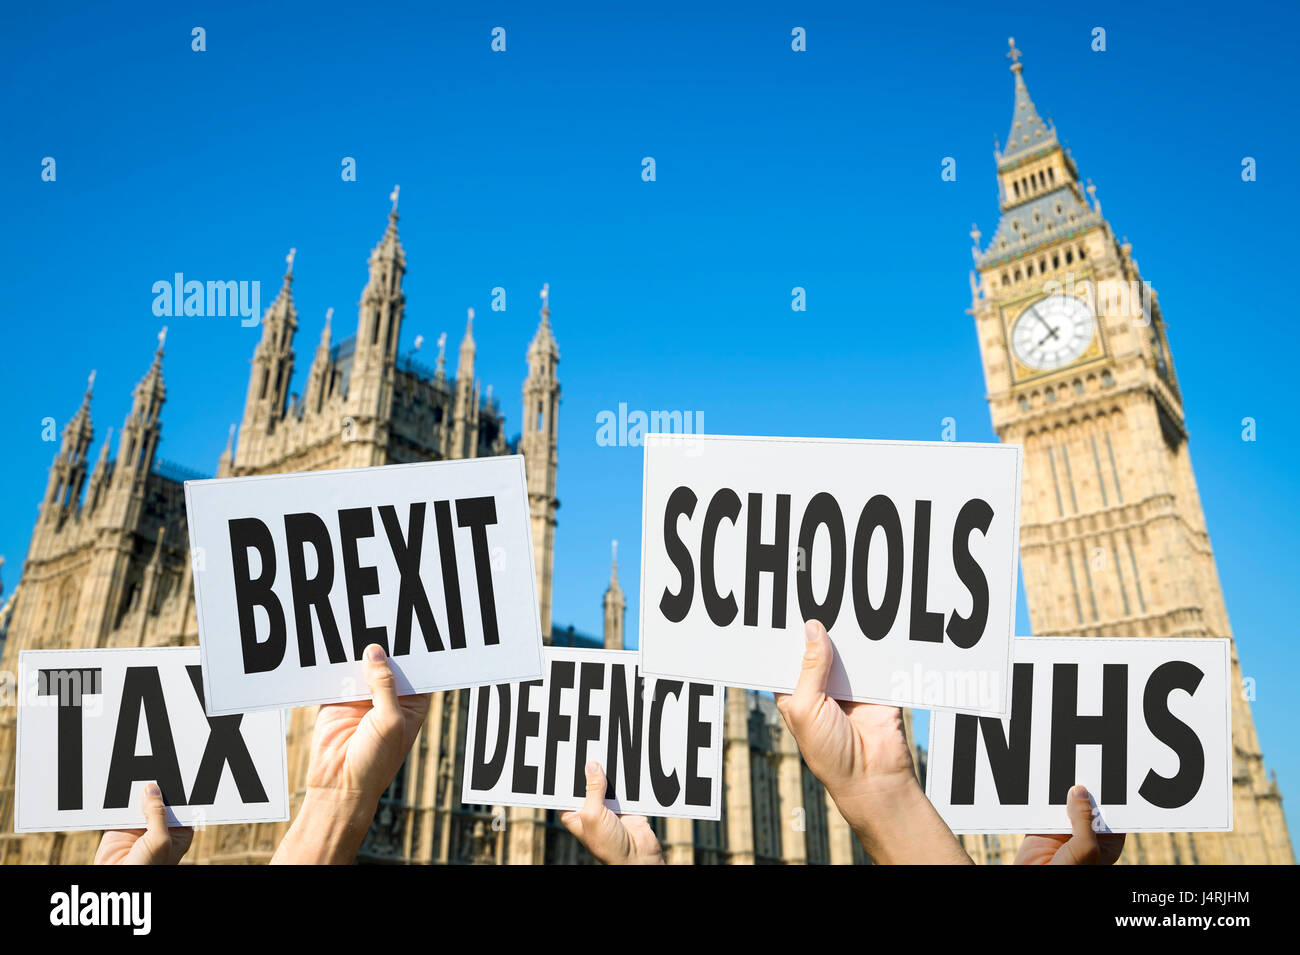 Election signs protesting modern British social issues like Brexit, tax, education, defense, health at the Houses - Stock Image